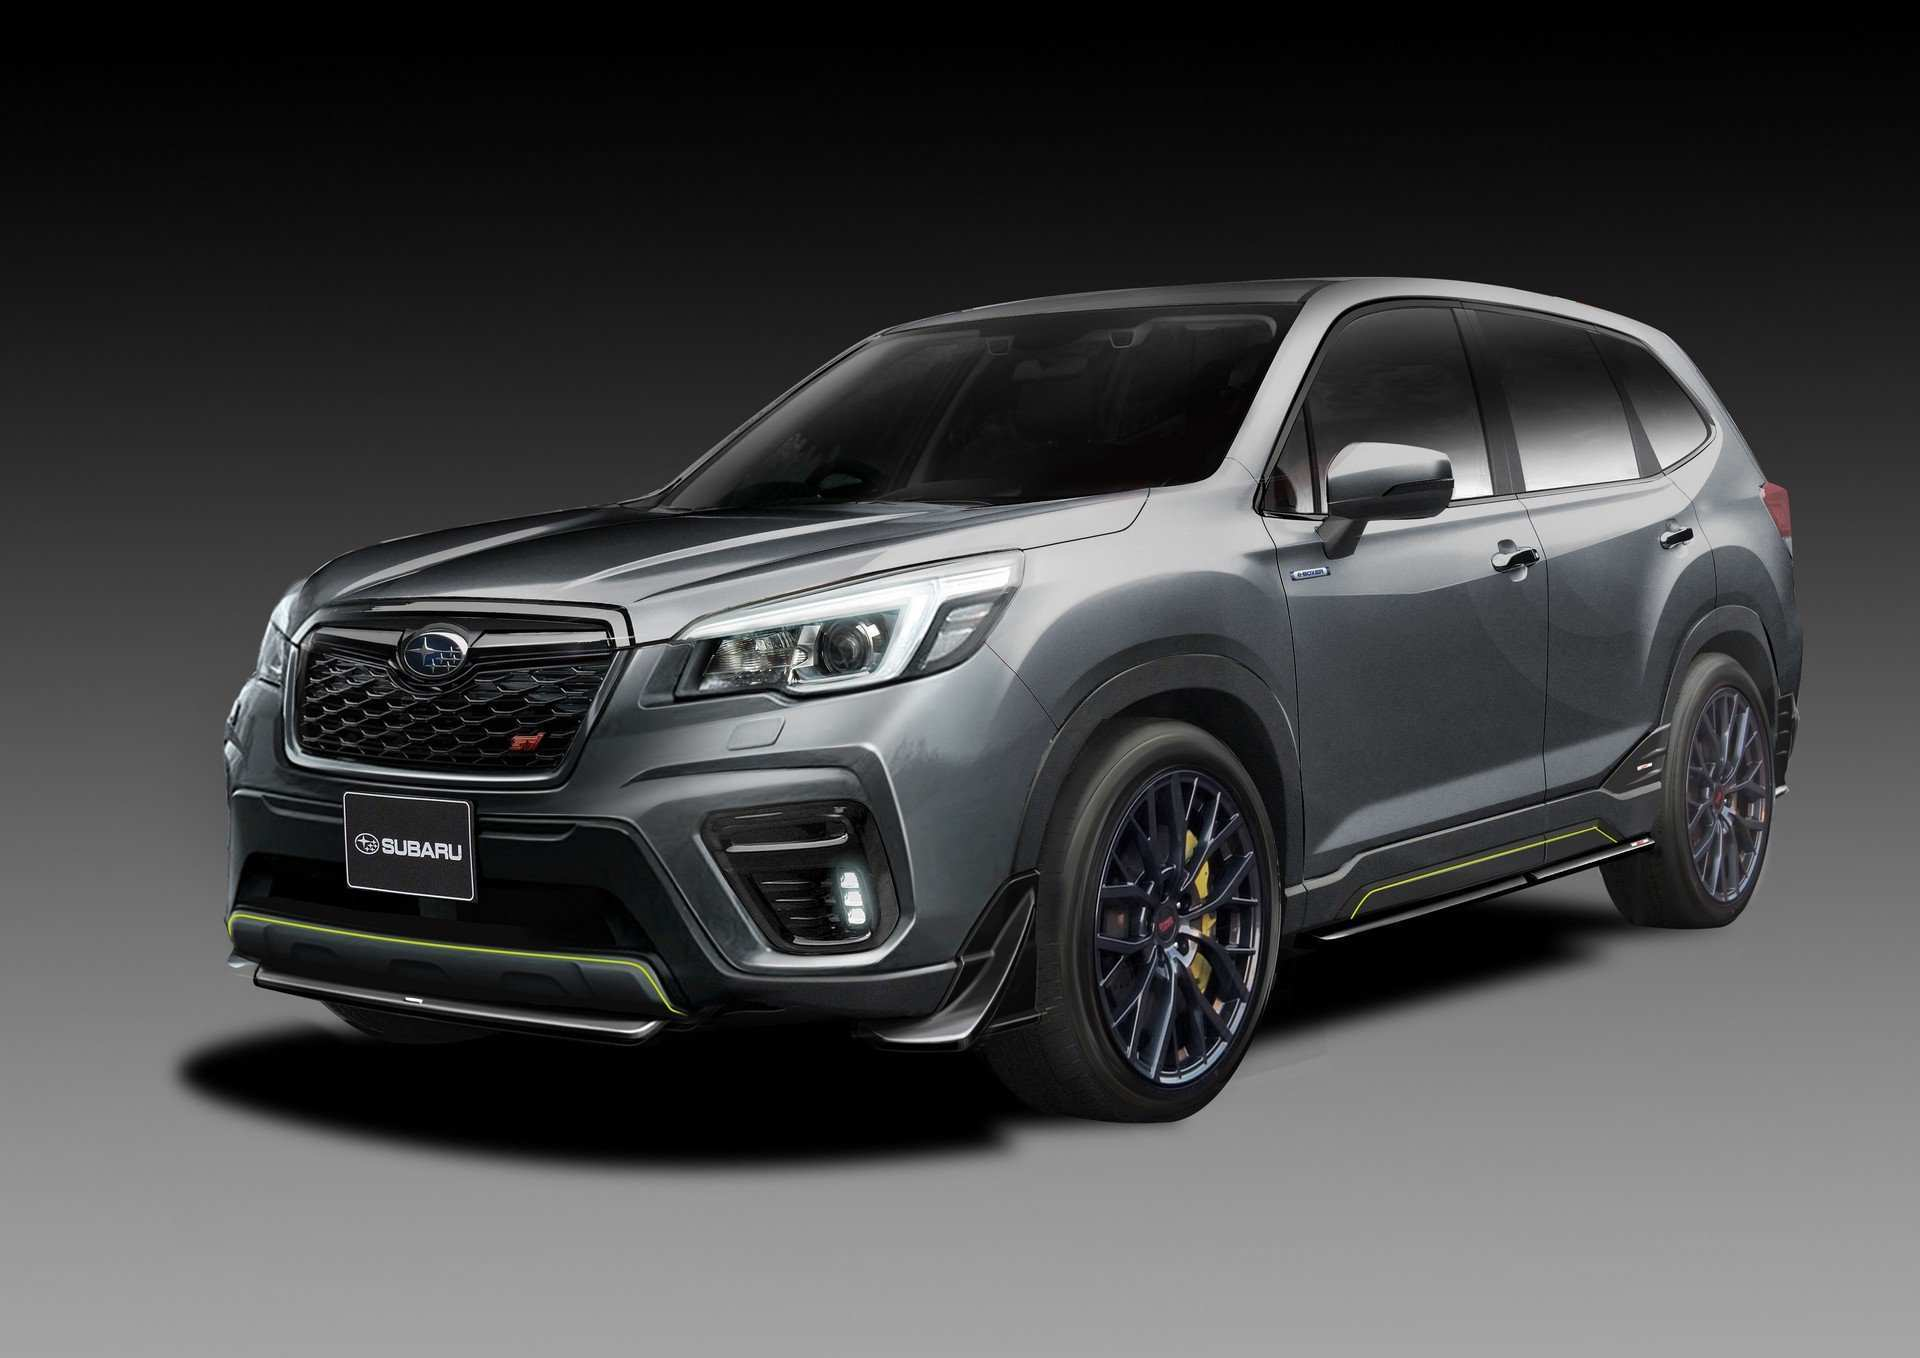 90 The Subaru Forester Hybrid 2020 Specs with Subaru Forester Hybrid 2020